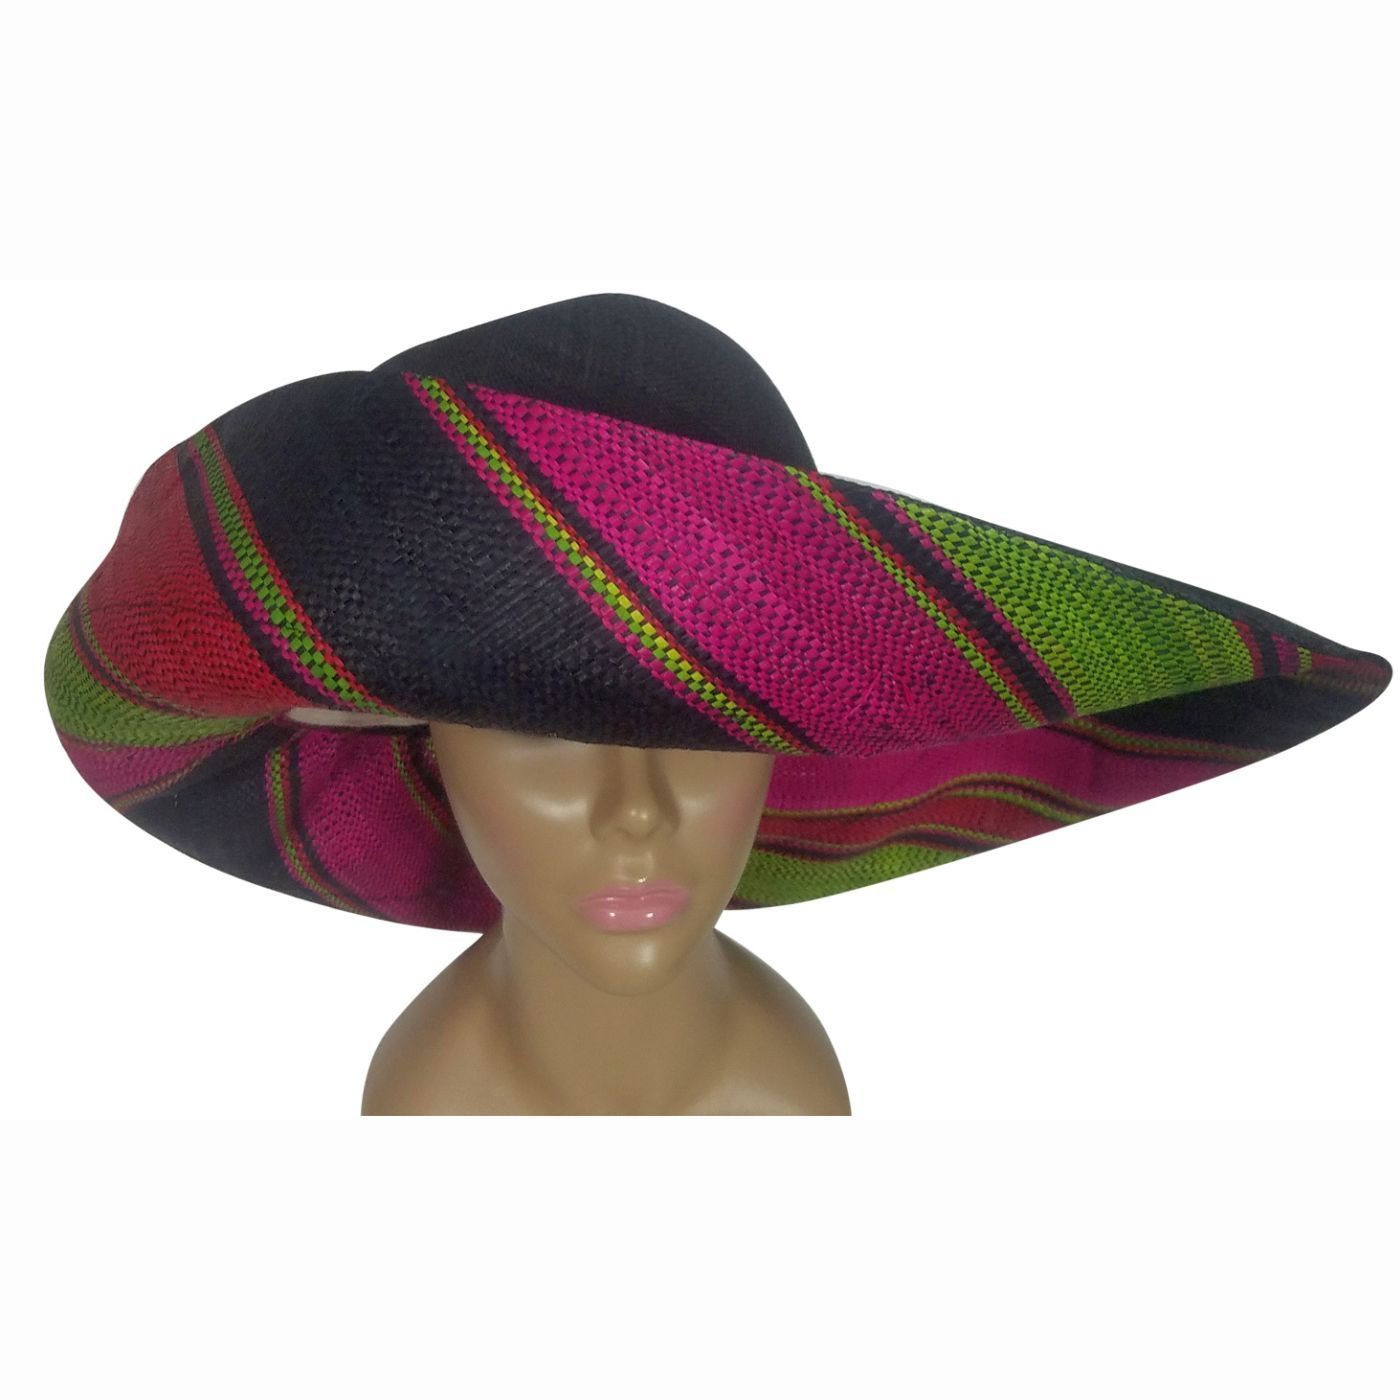 Sedera: Authentic African Handwoven Multi-Color Madagascar Big Brim Raffia Sun Hat